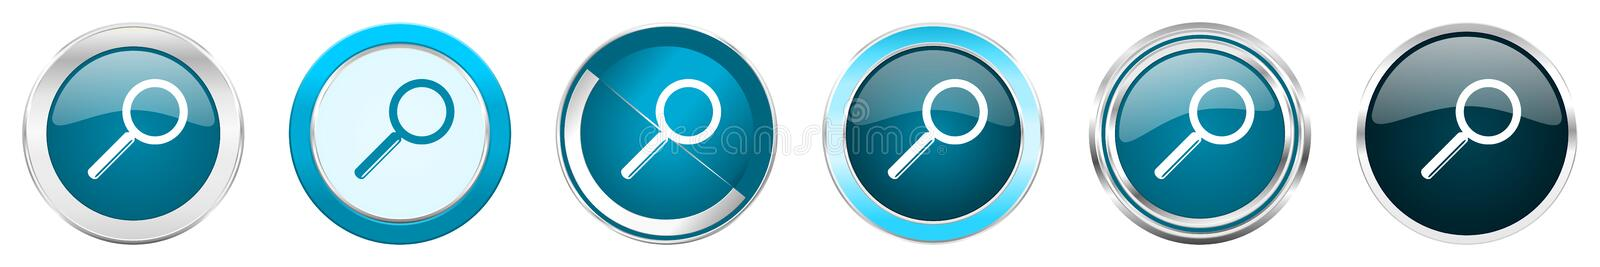 Search silver metallic chrome border icons in 6 options, set of web blue round buttons isolated on white background.  vector illustration